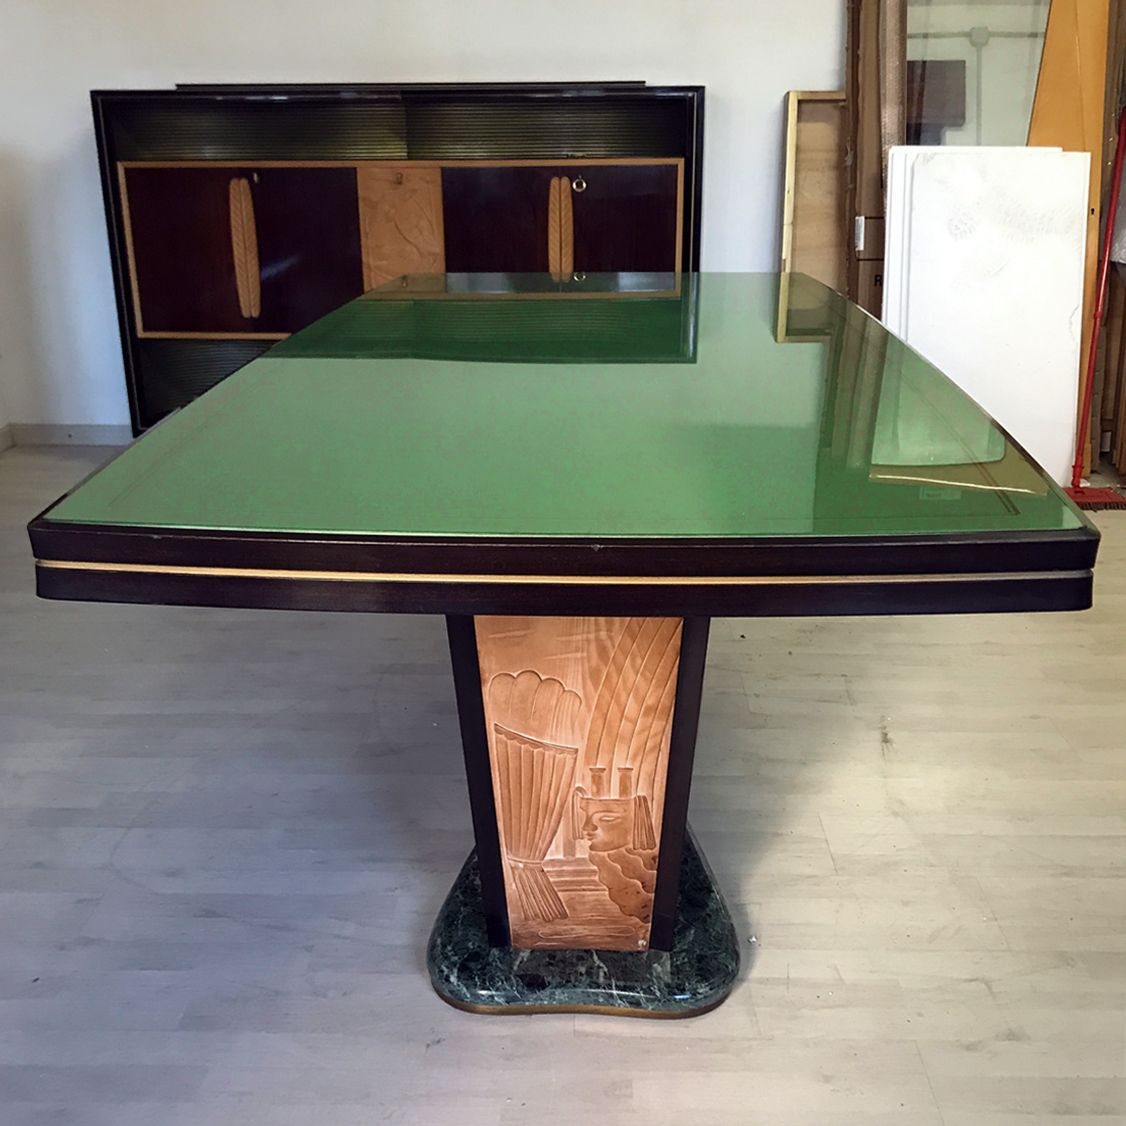 Table Top 1955: Italian Rosewood Dining Table With Green Top By Vittorio